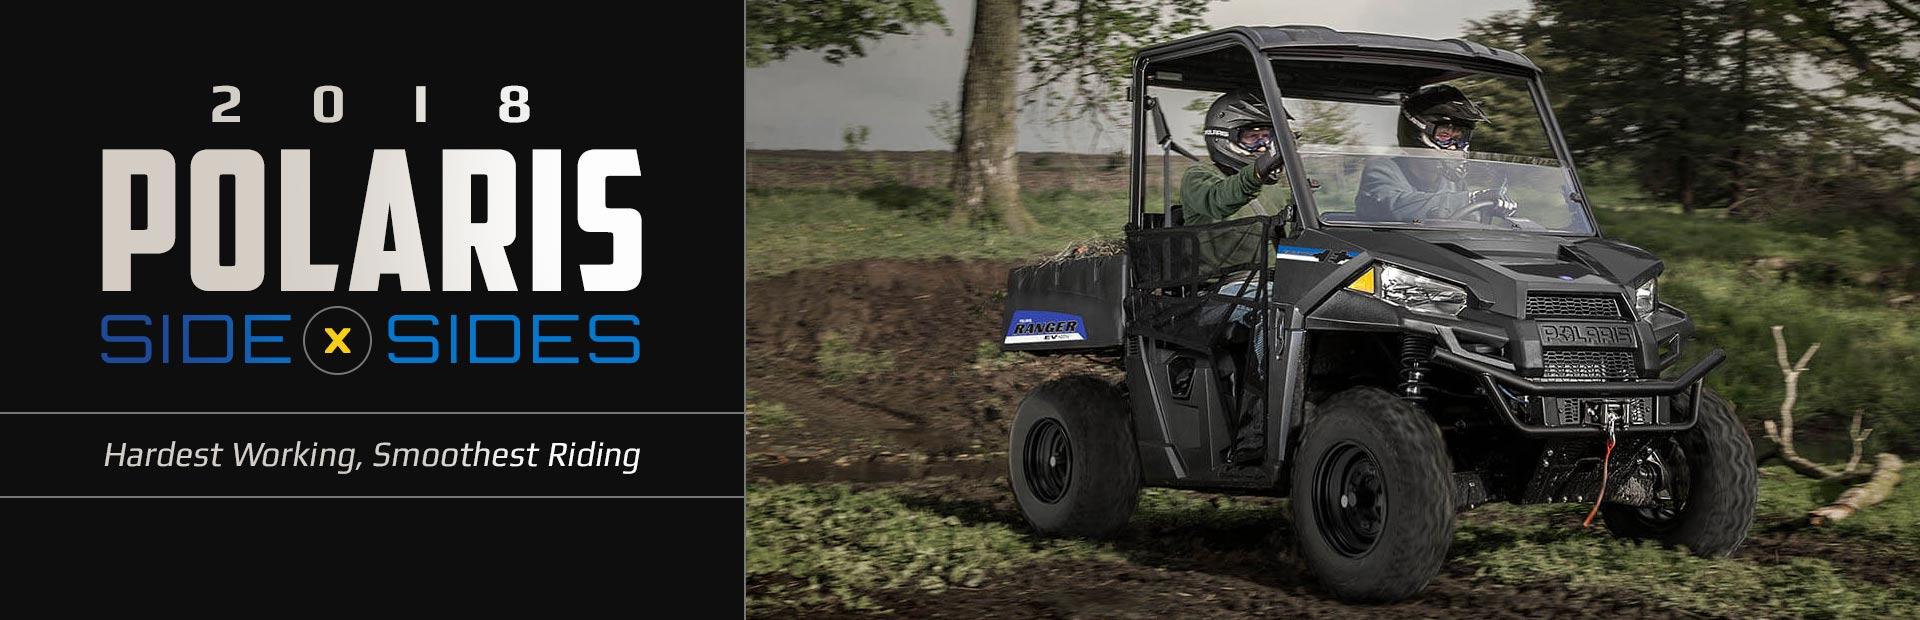 2018 Polaris Side x Sides: Click here to view the models.